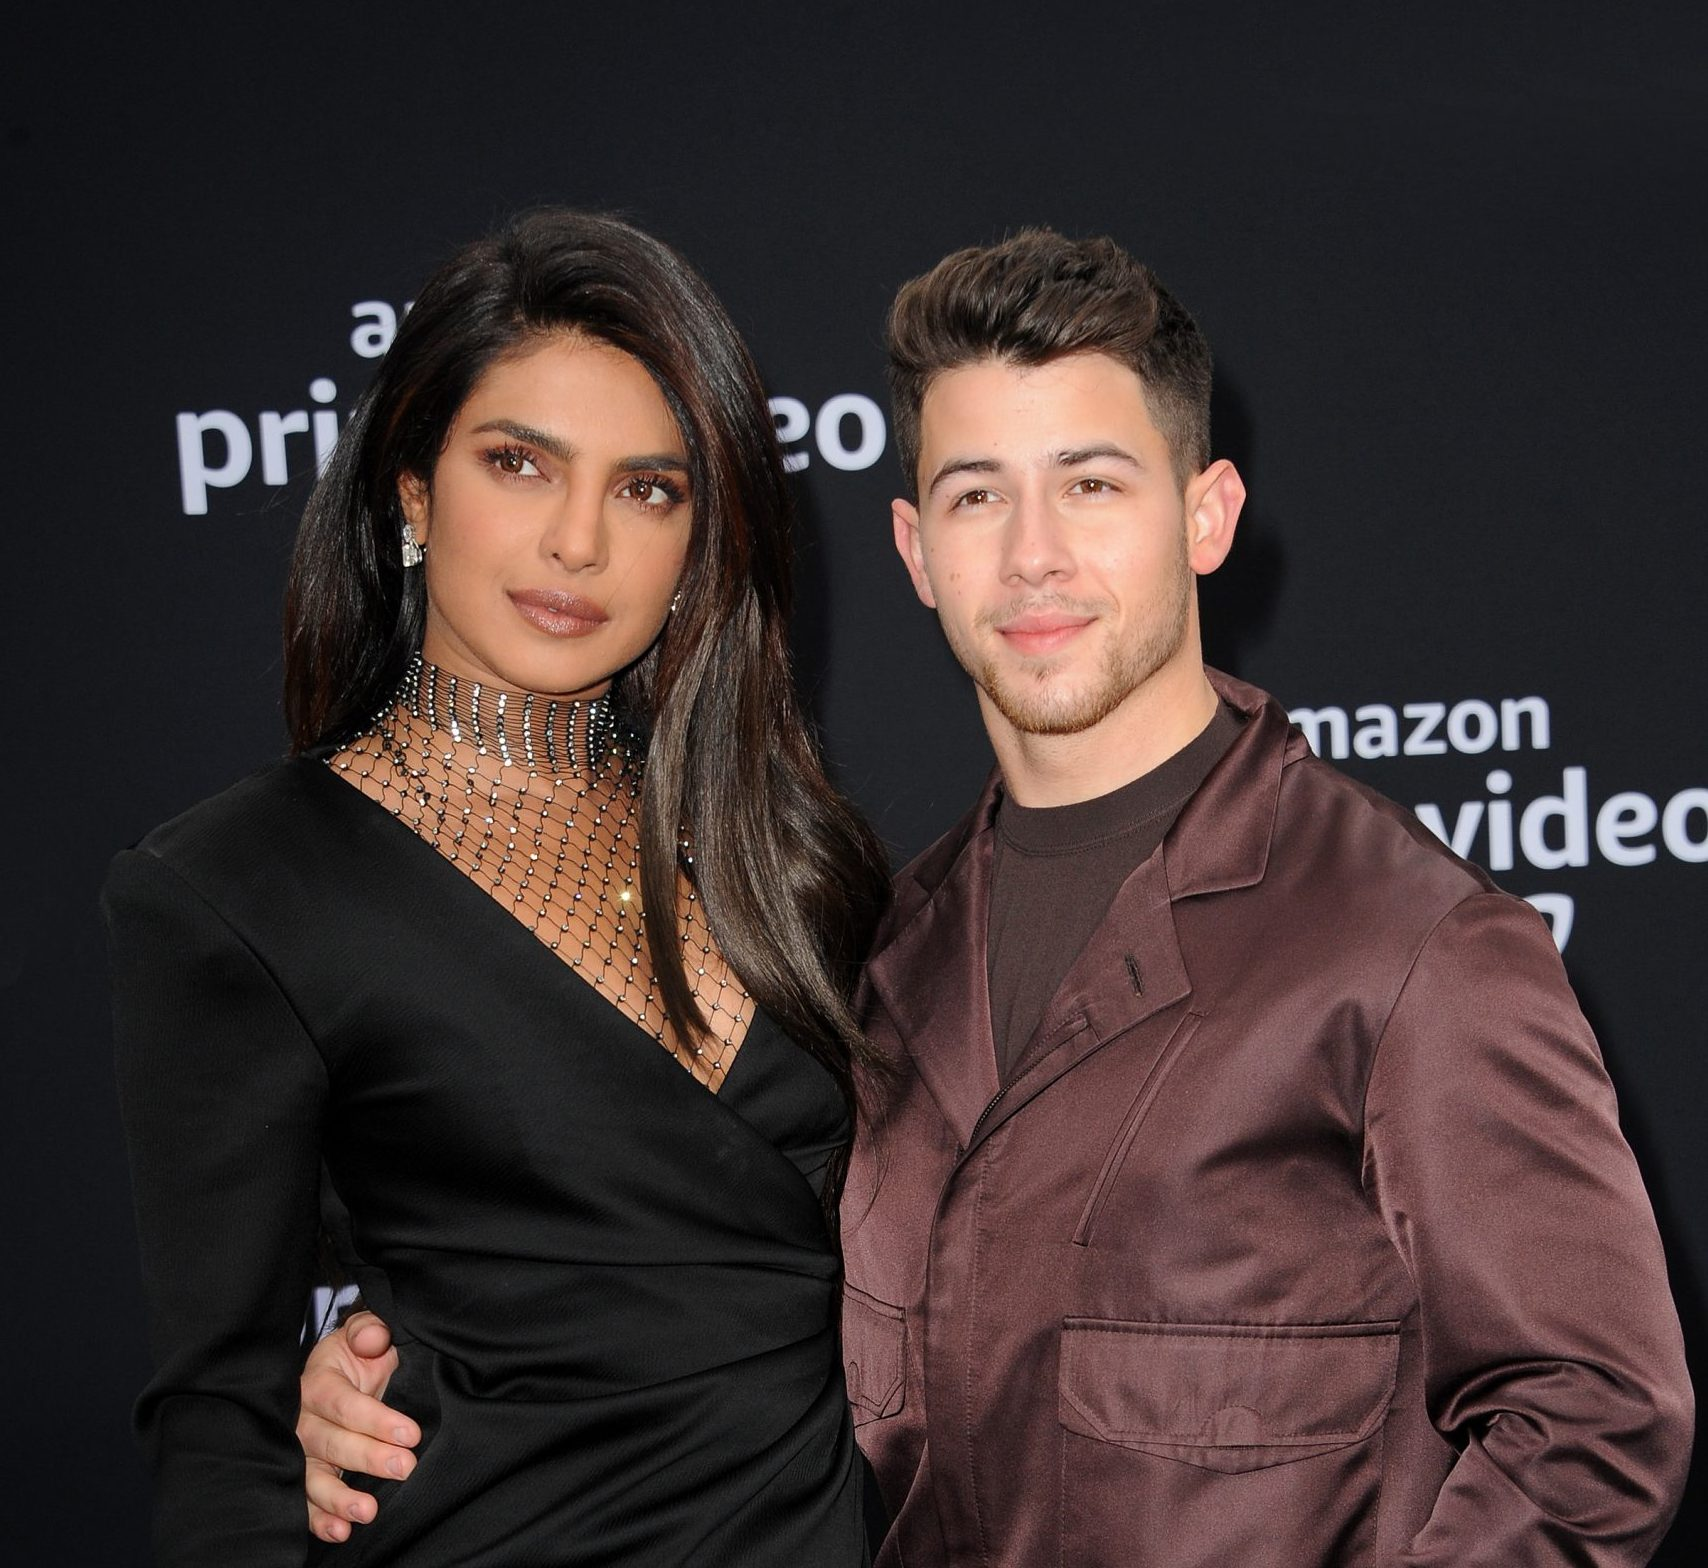 Priyanka Chopra and Nick Jonas attend a red carpet event. She wears a long sleeved black dress with her hair out and a sparkling choker around her neck. He wears a shiny brown suit with a brown t-shirt underneath. He has his arm around her waist. They are both looking past the camera and slightly smiling.